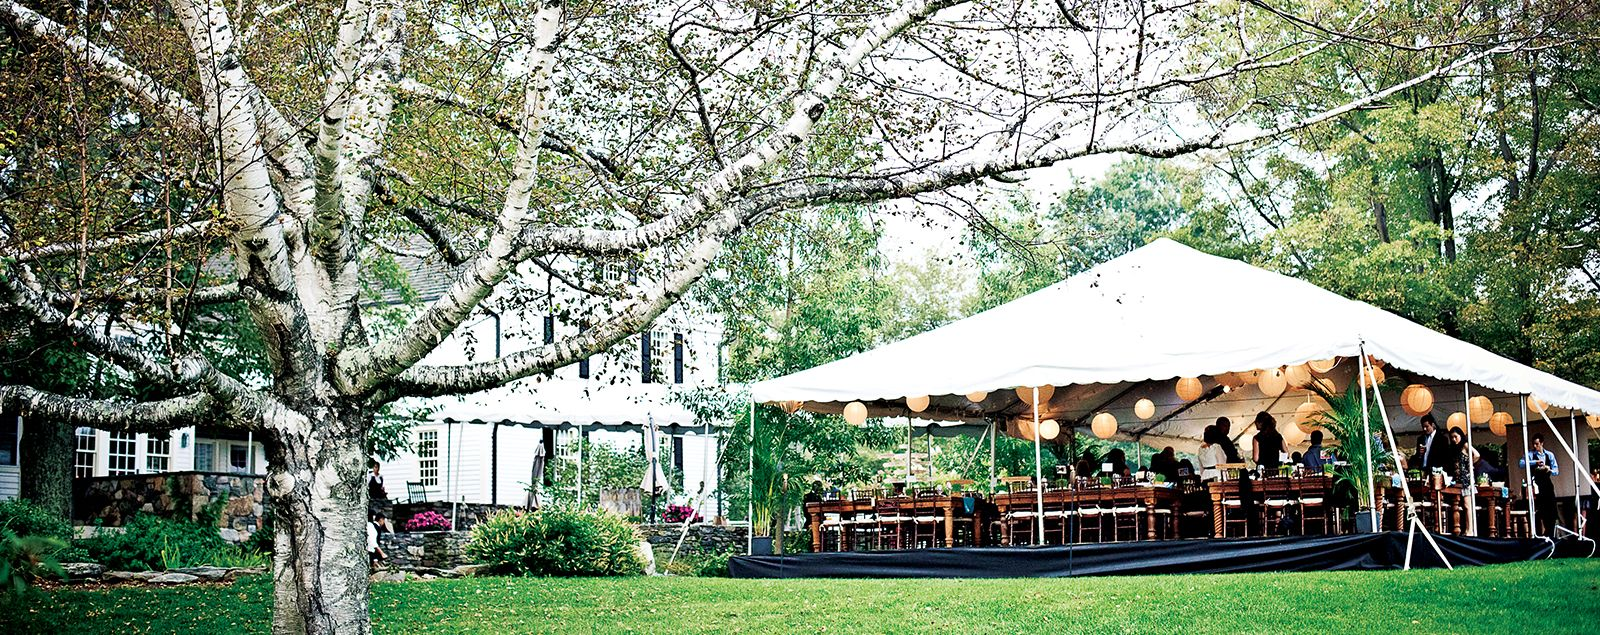 The Elegance And Rustic Nature Of Winvian Farm Makes It Ultimate Venue For A New England Wedding Reception